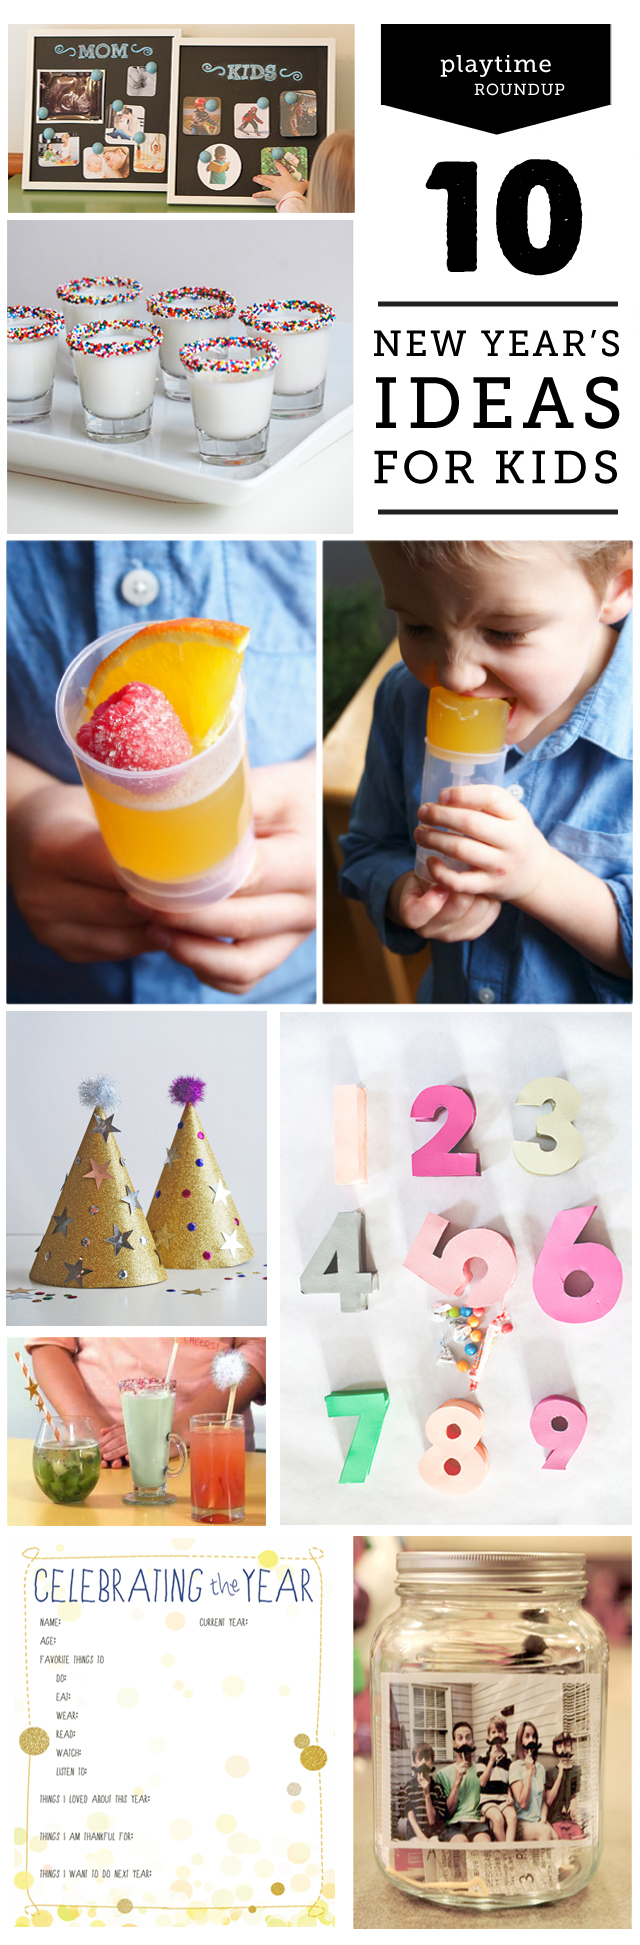 Top 10 Ways for Families to Celebrate New Year's Eve